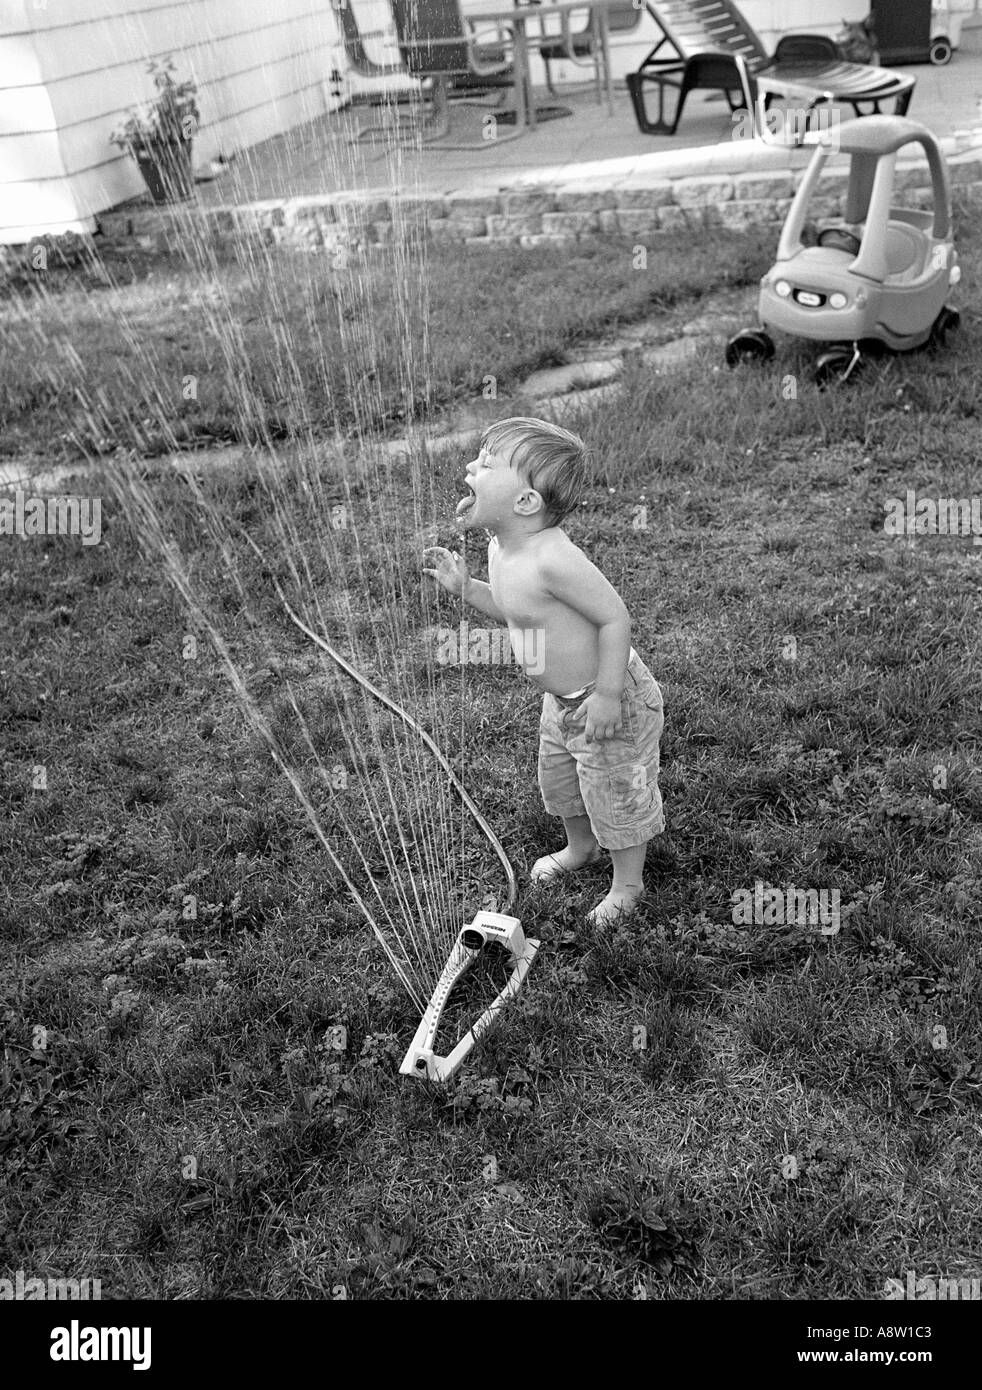 Small boy playing with lawn sprinkler drinking water and cooling off on a hot summer day in his backyard - Stock Image